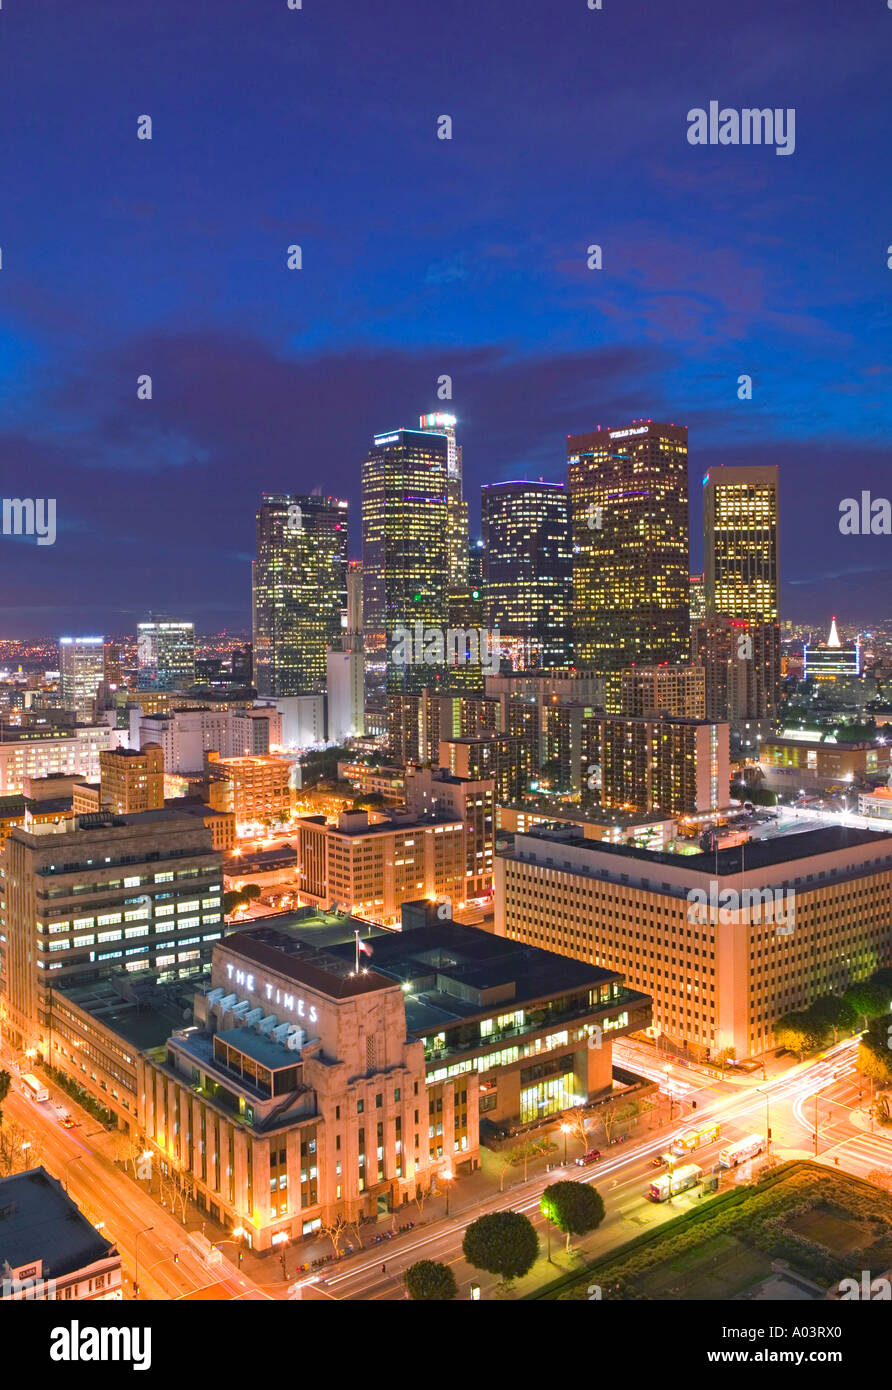 Downtown Los Angeles, California, USA - Stock Image